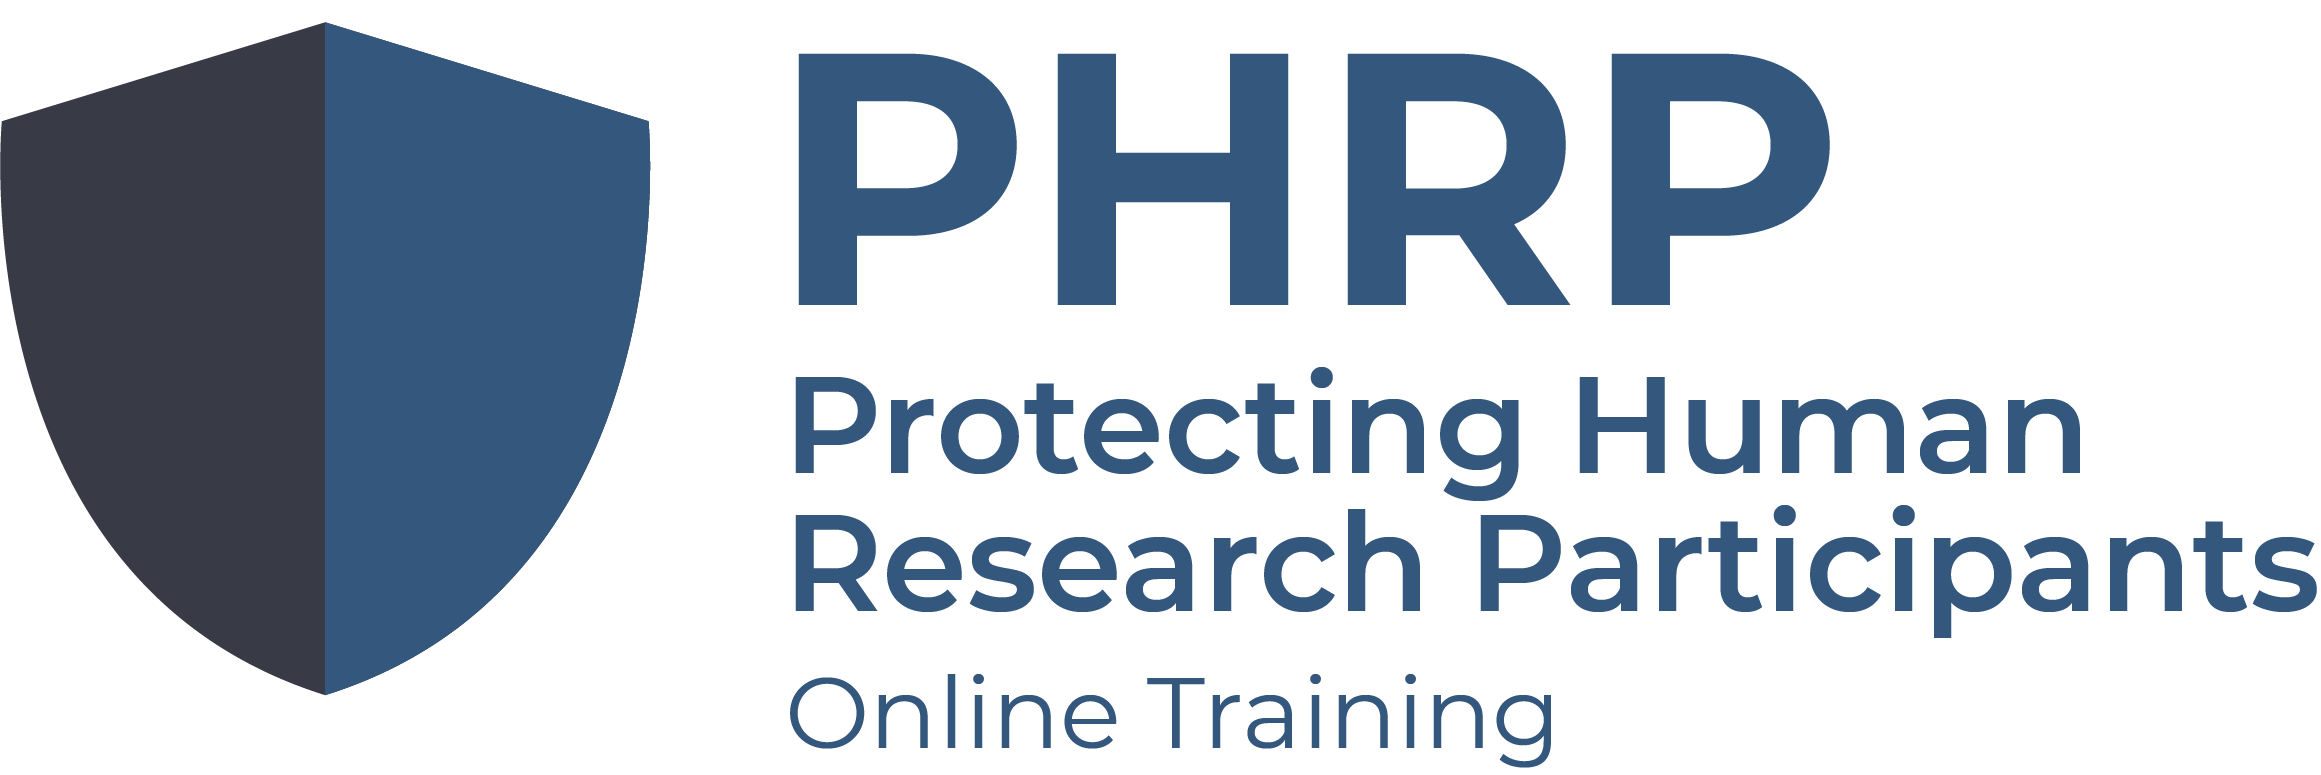 PHRP Online Training